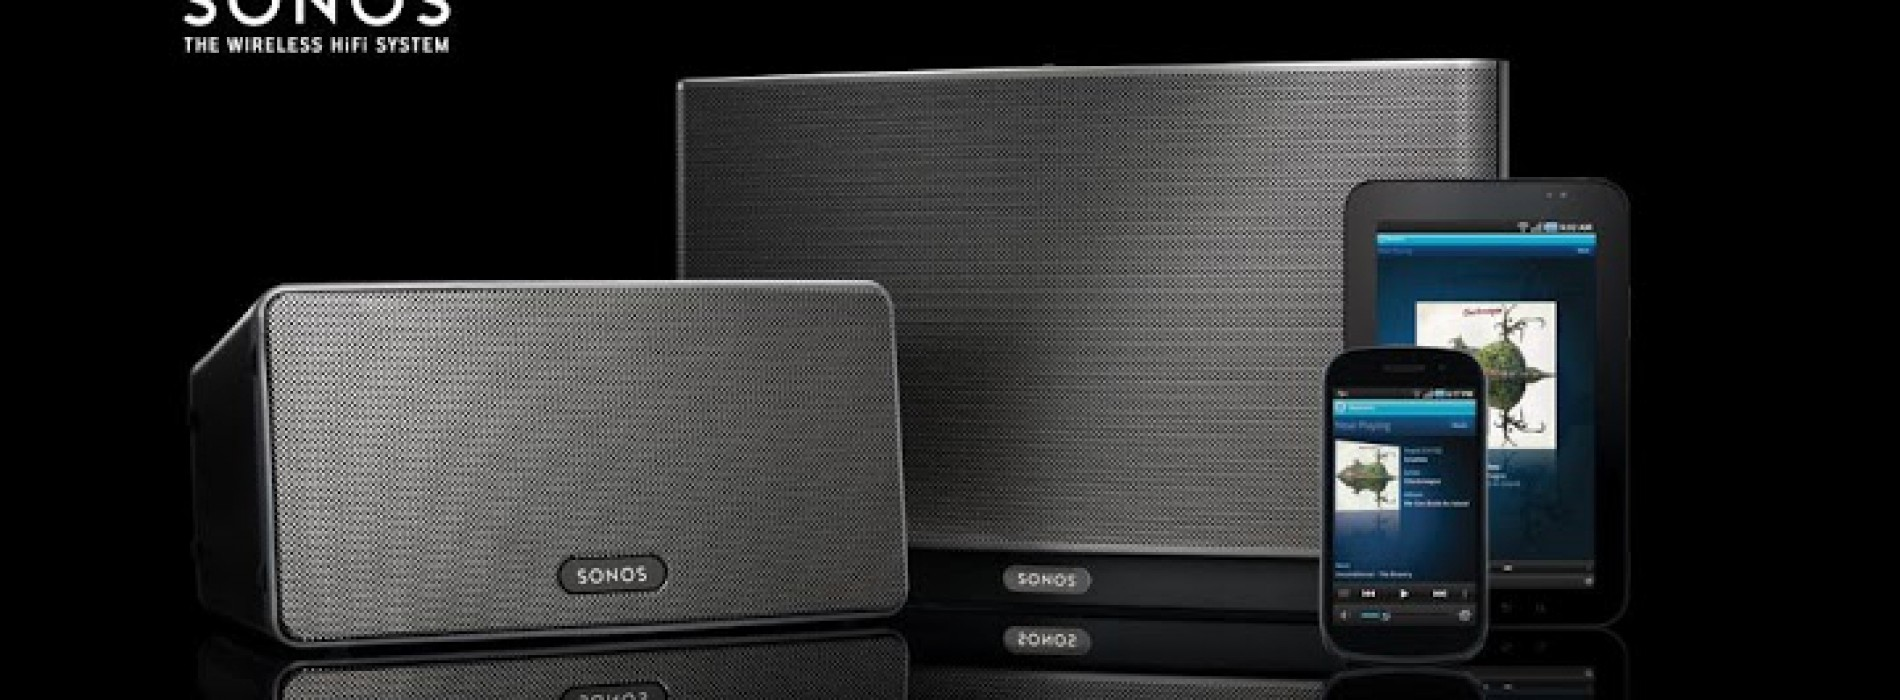 CYBER MONDAY: Score a $100 gift card with a Sonos Wireless HiFi System